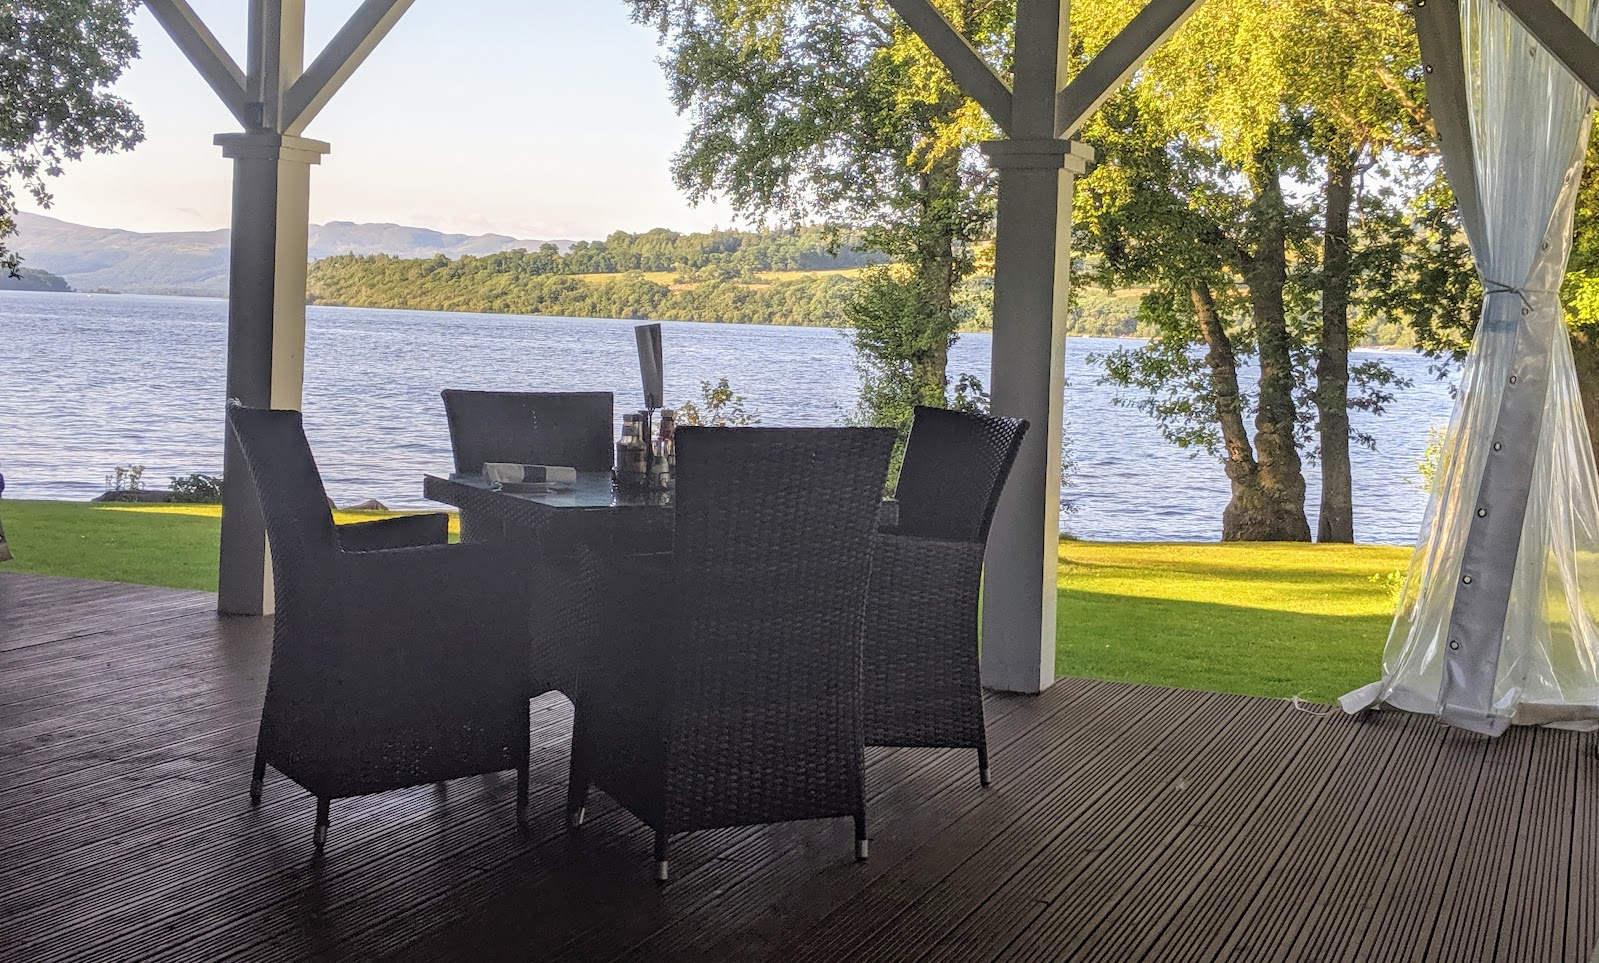 A Short Break at Cameron Lodges, Loch Lomond - the boat house - decking overlooking loch lomond